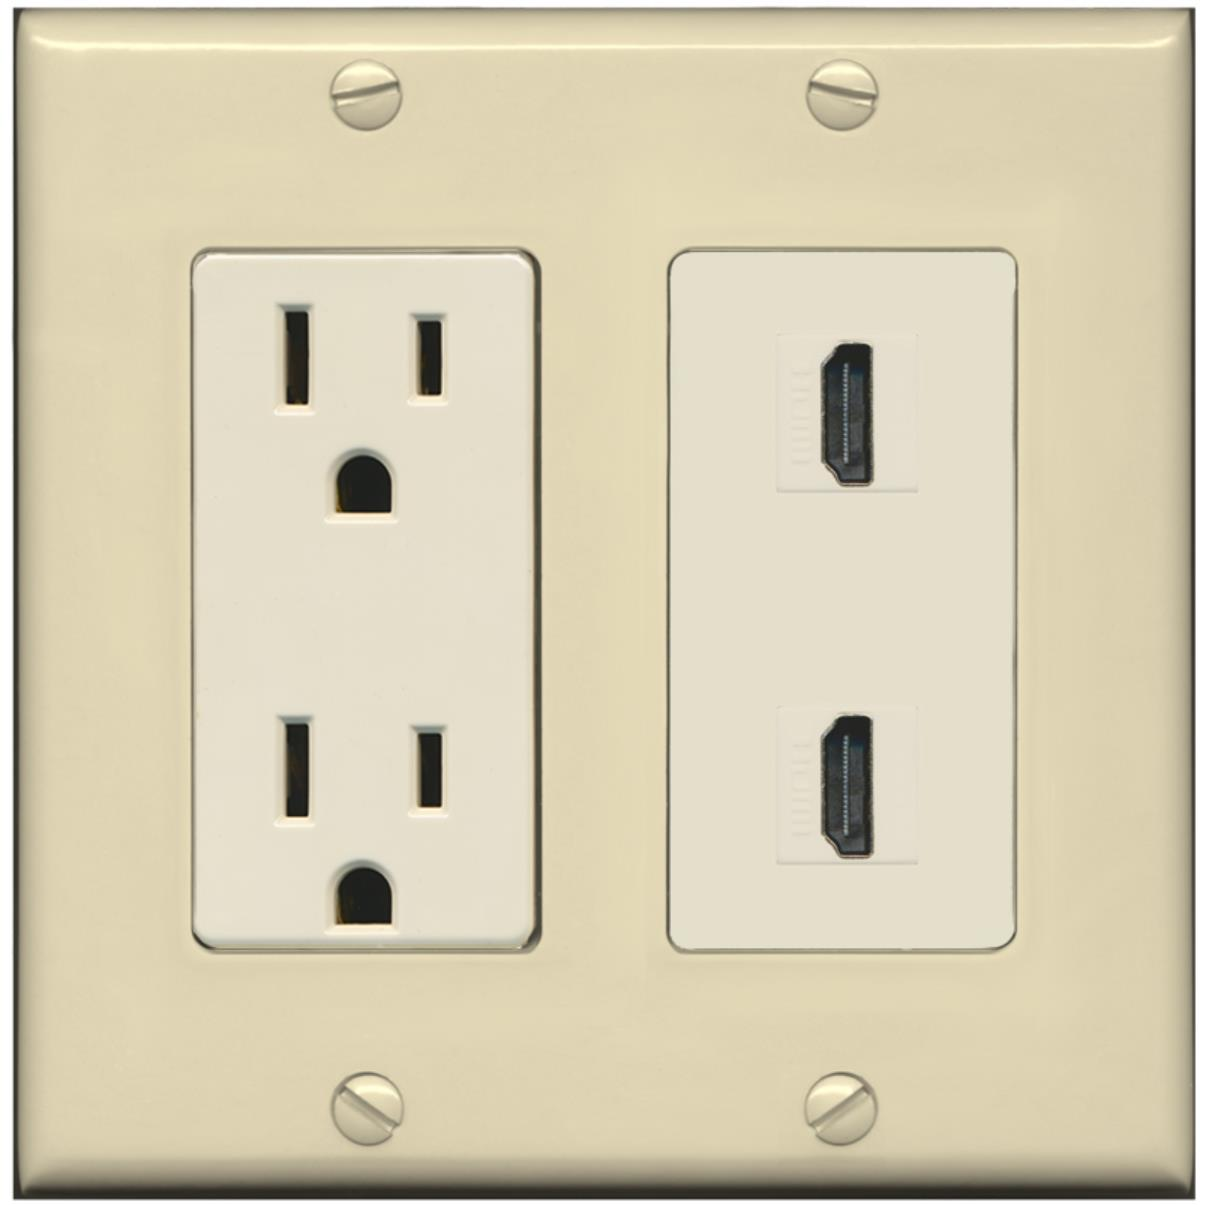 RiteAV - 15 Amp Power Outlet 2 Port HDMI Decora Wall Plate - Ivory/Light Almond